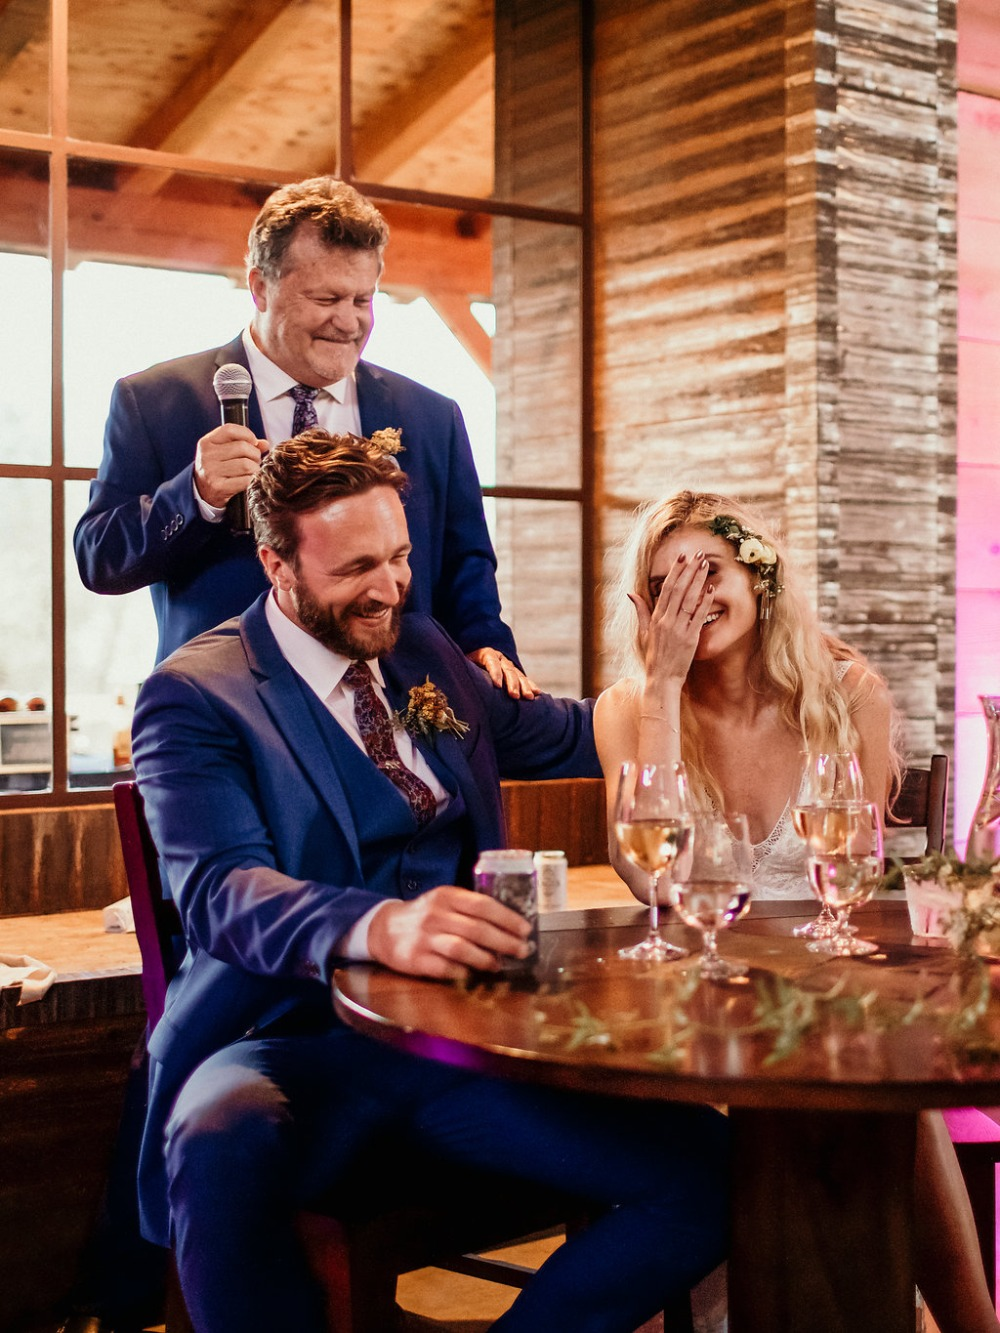 cracking up the newlyweds